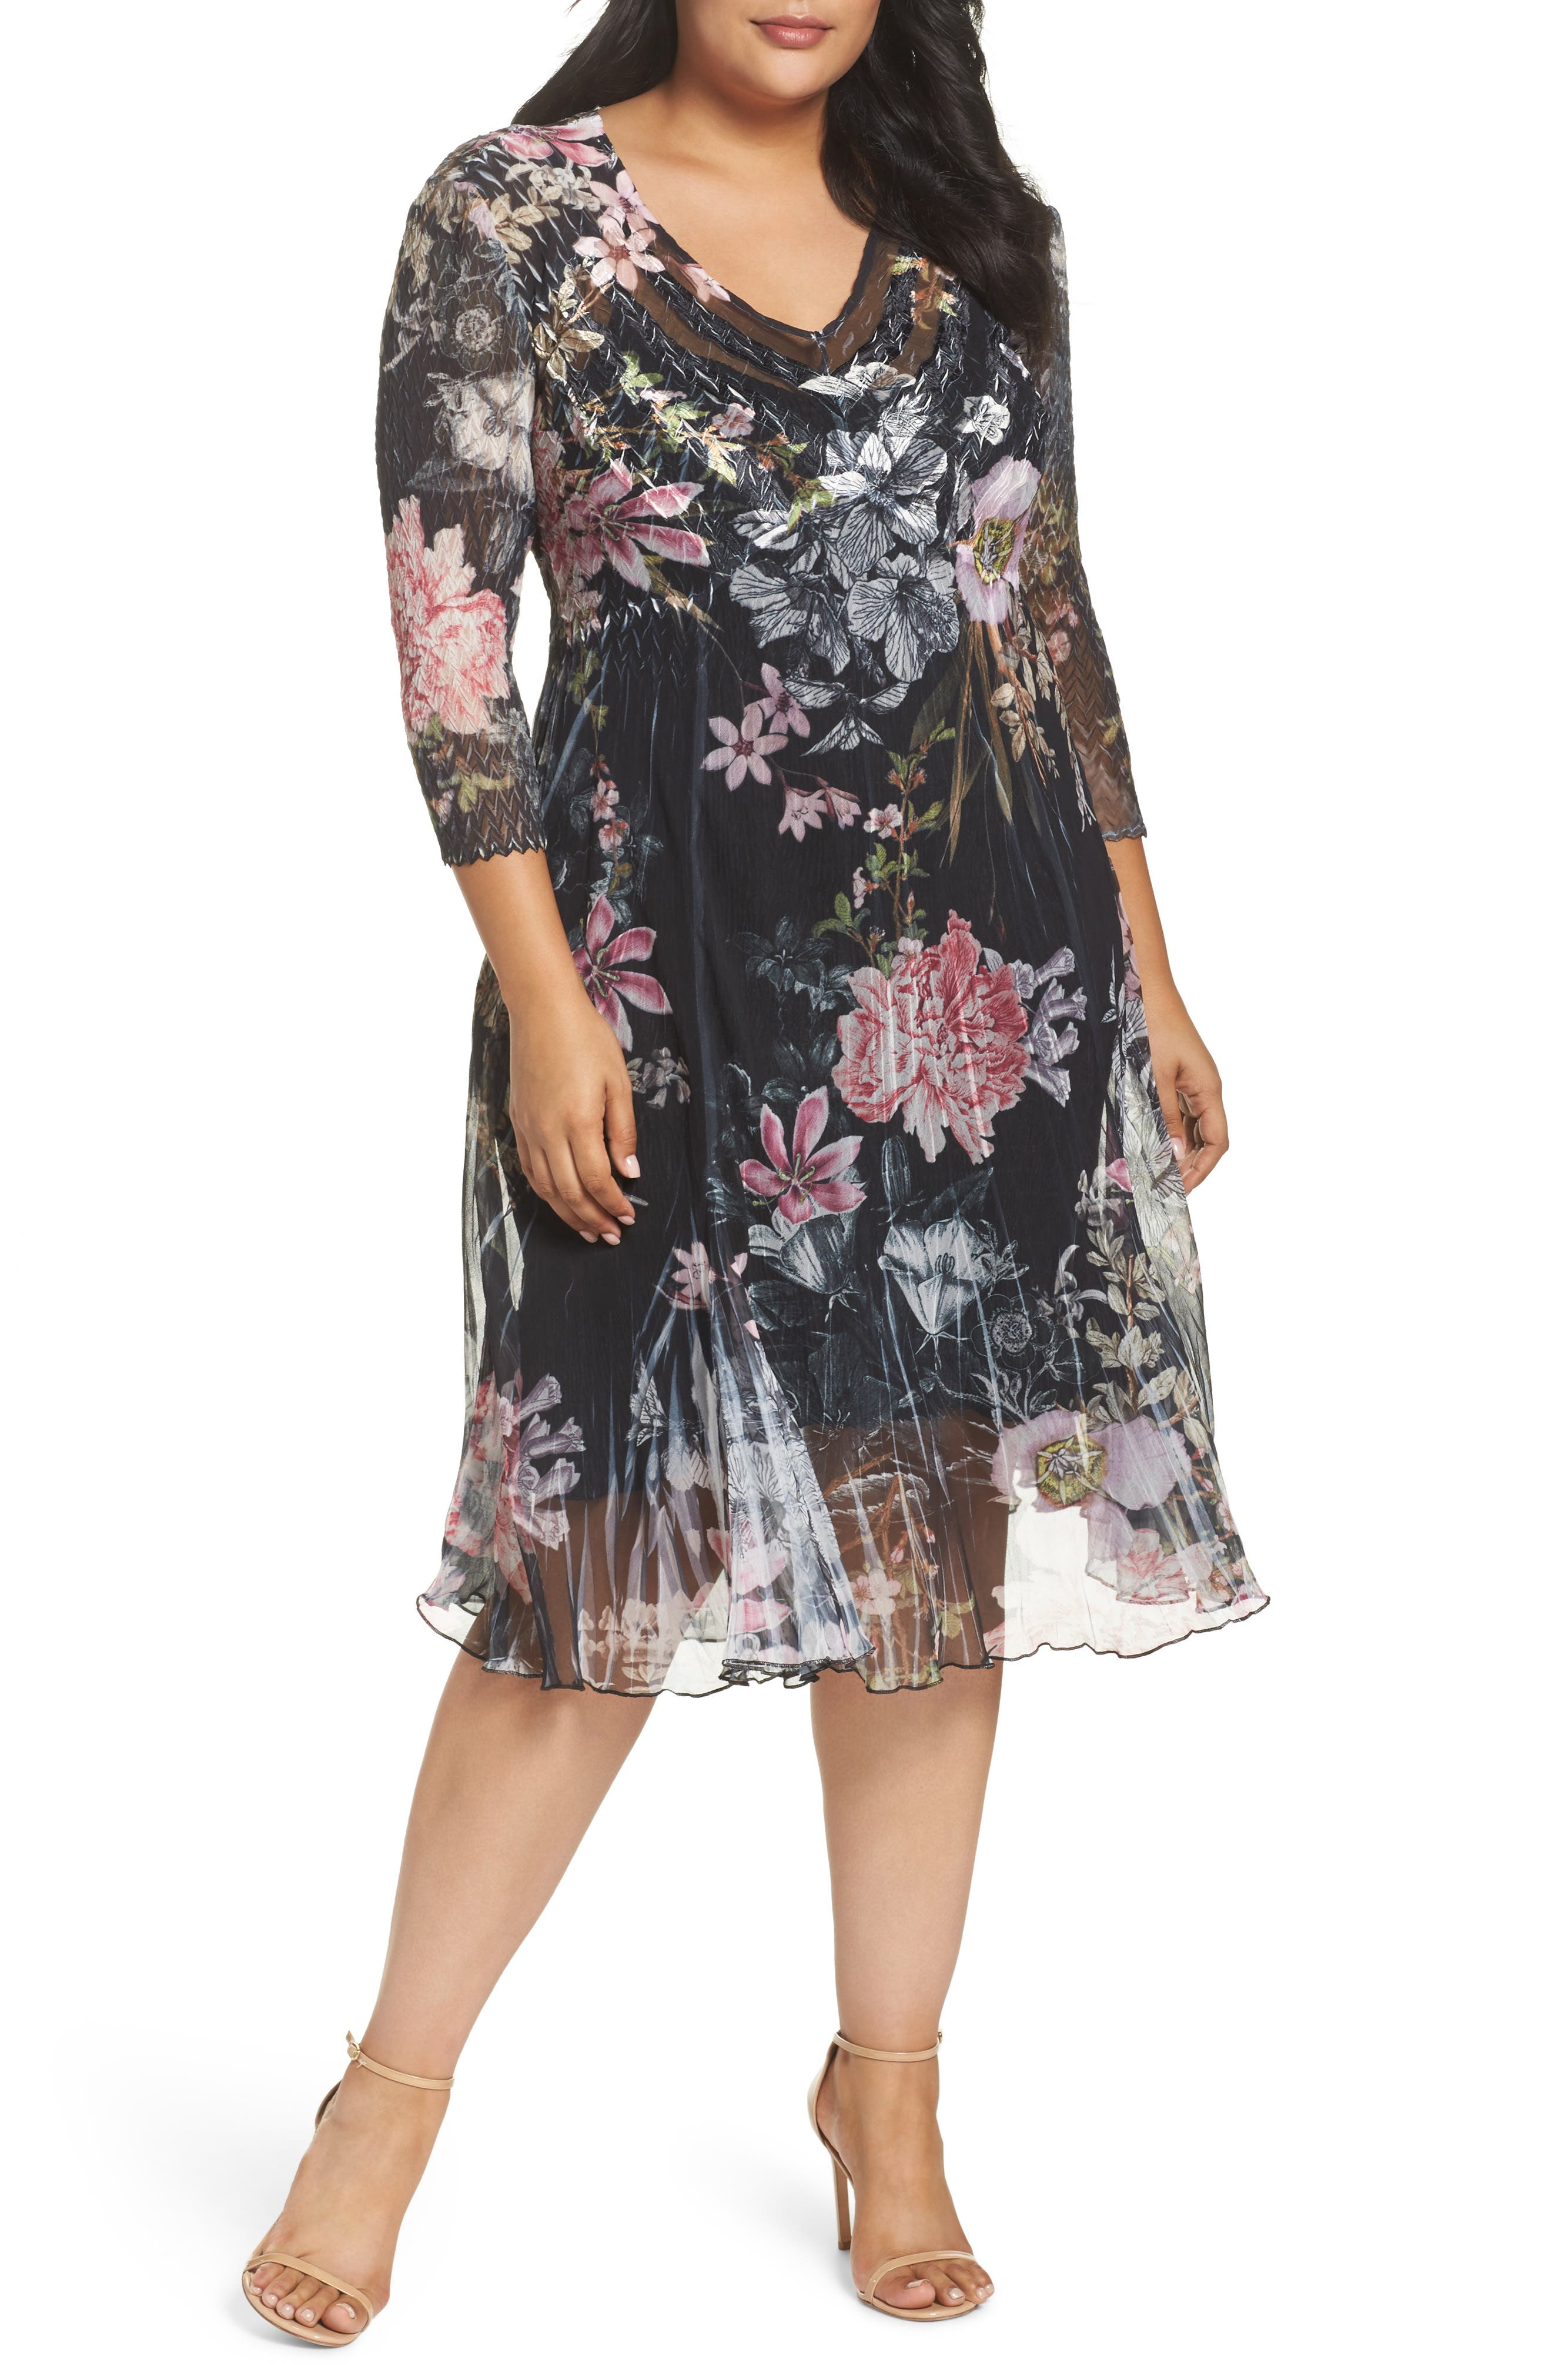 Kamarov Floral Charmeuse & Chiffon Floral A-Line Dress,                             Alternate thumbnail 6, color,                             001